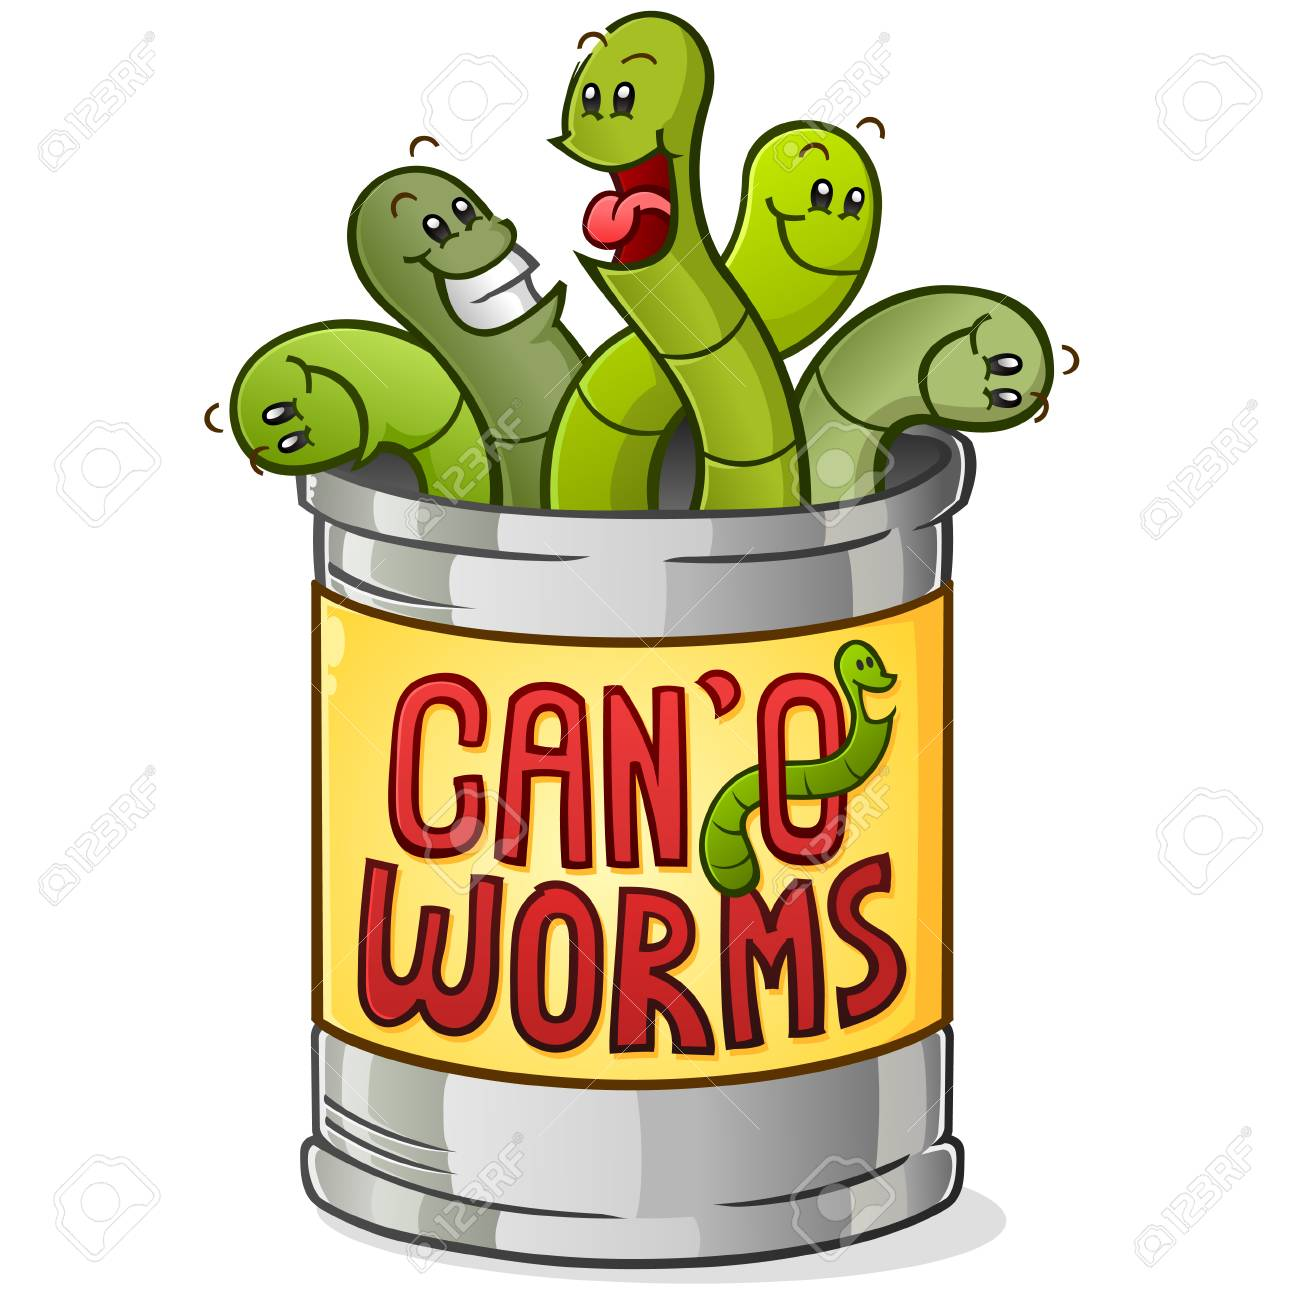 Can of Worms Cartoon Character - 117260512